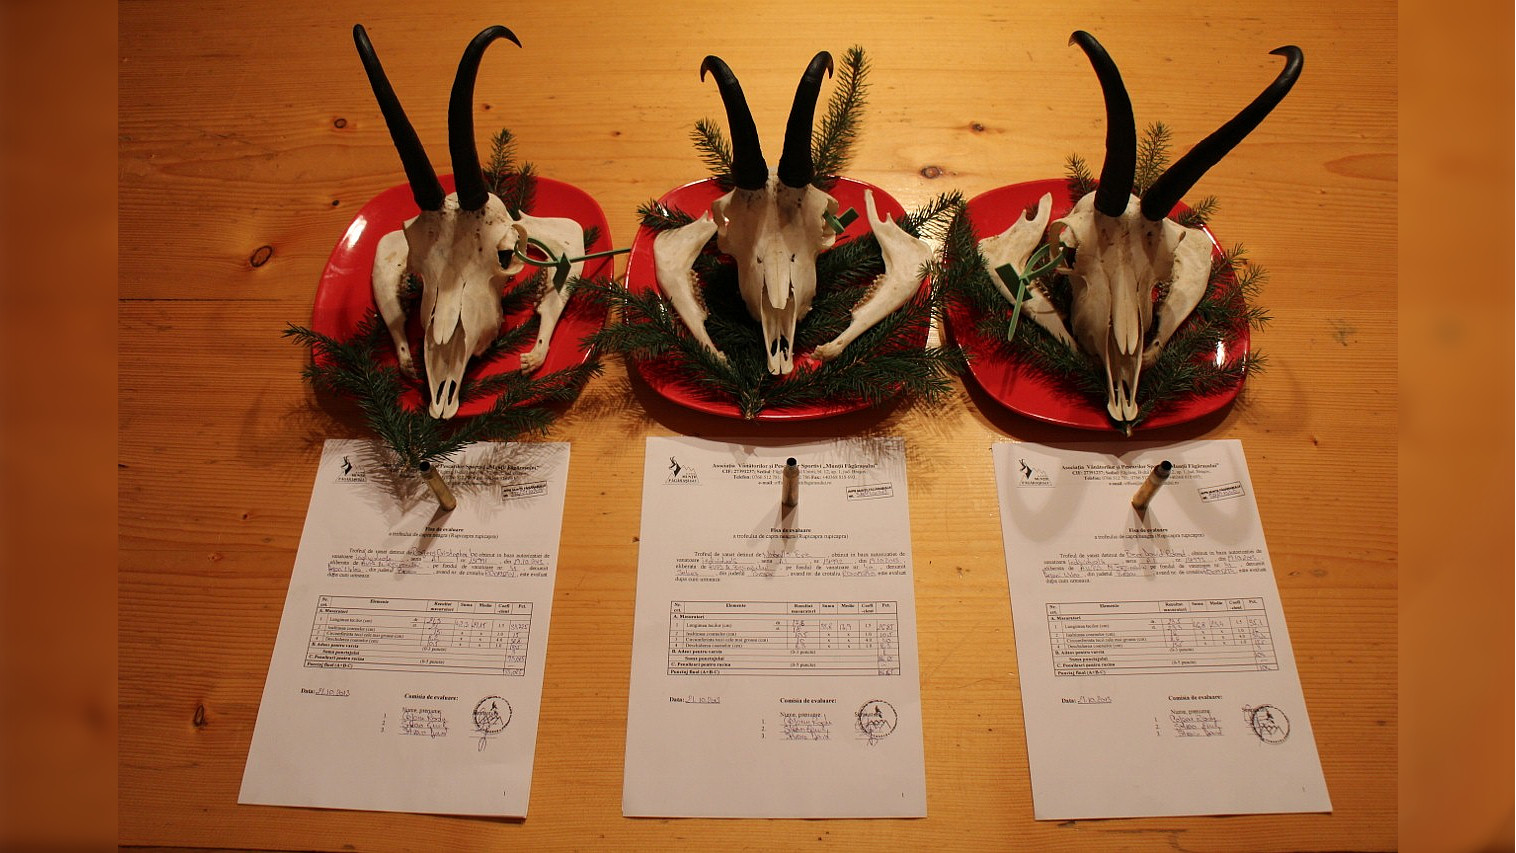 Registration of Chamois Trophies (2013)